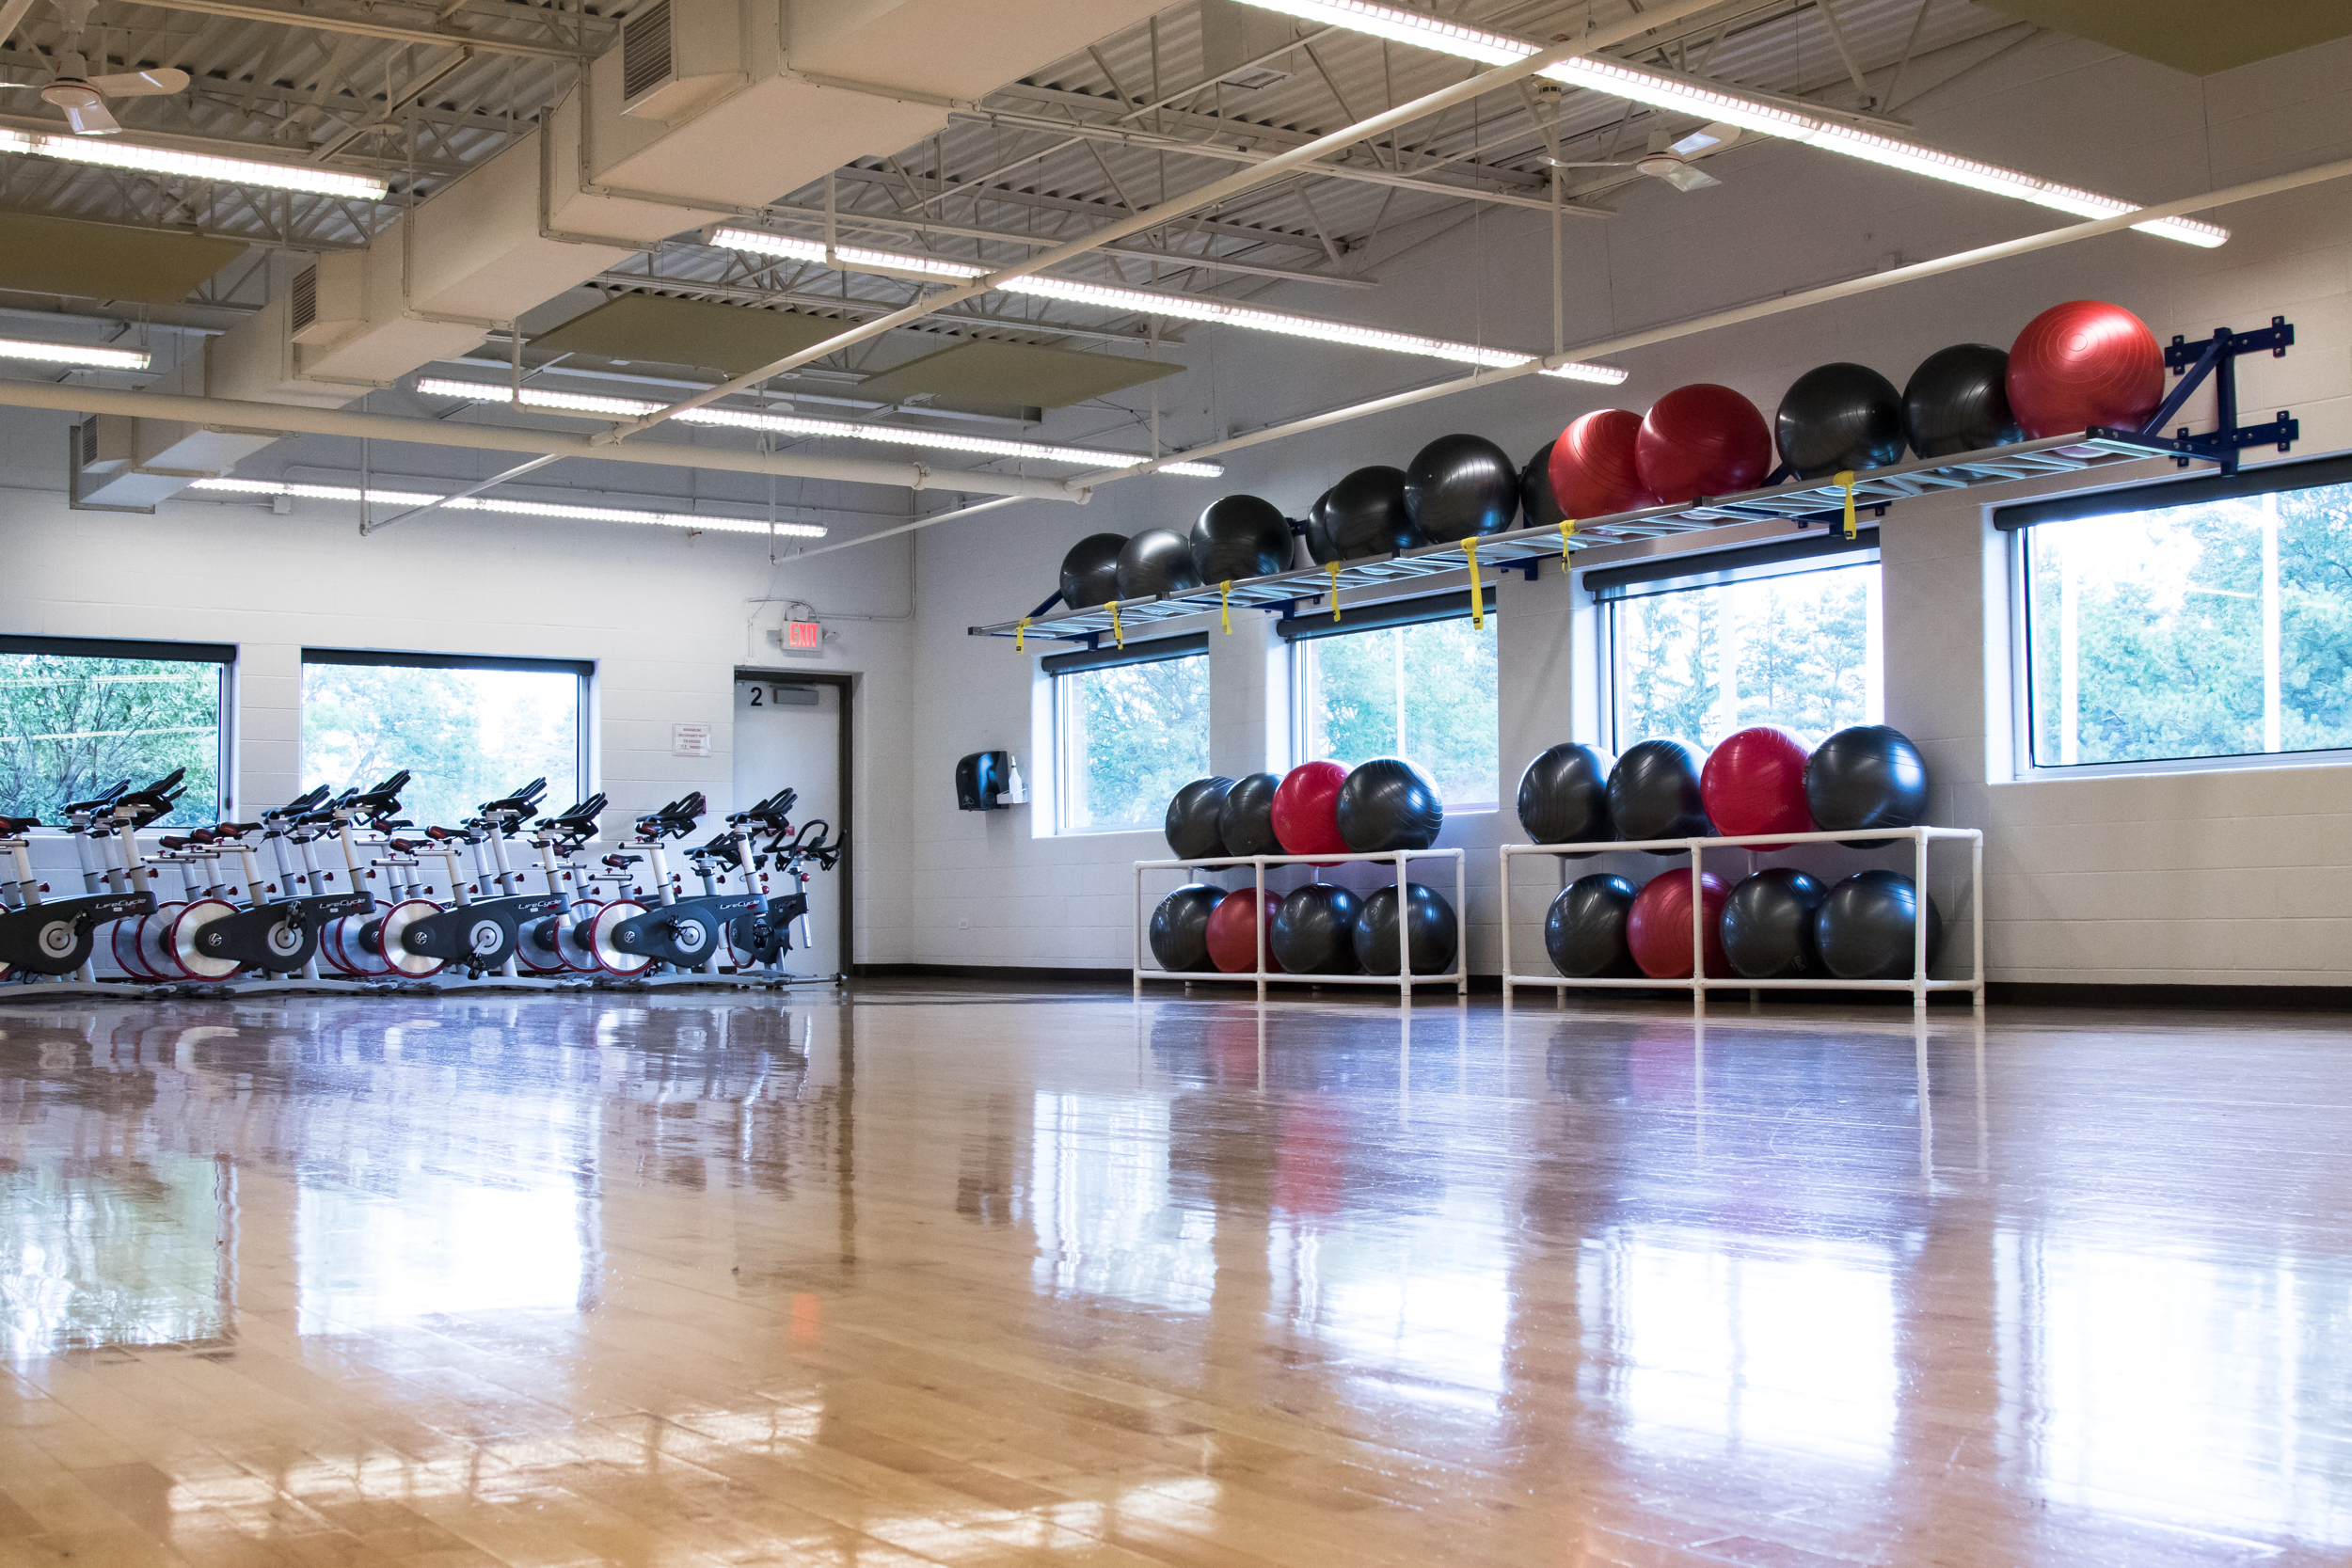 North Lakes Sports Club Jobs Lakeview Fitness Vernon Hills Park District Gyms Health Club